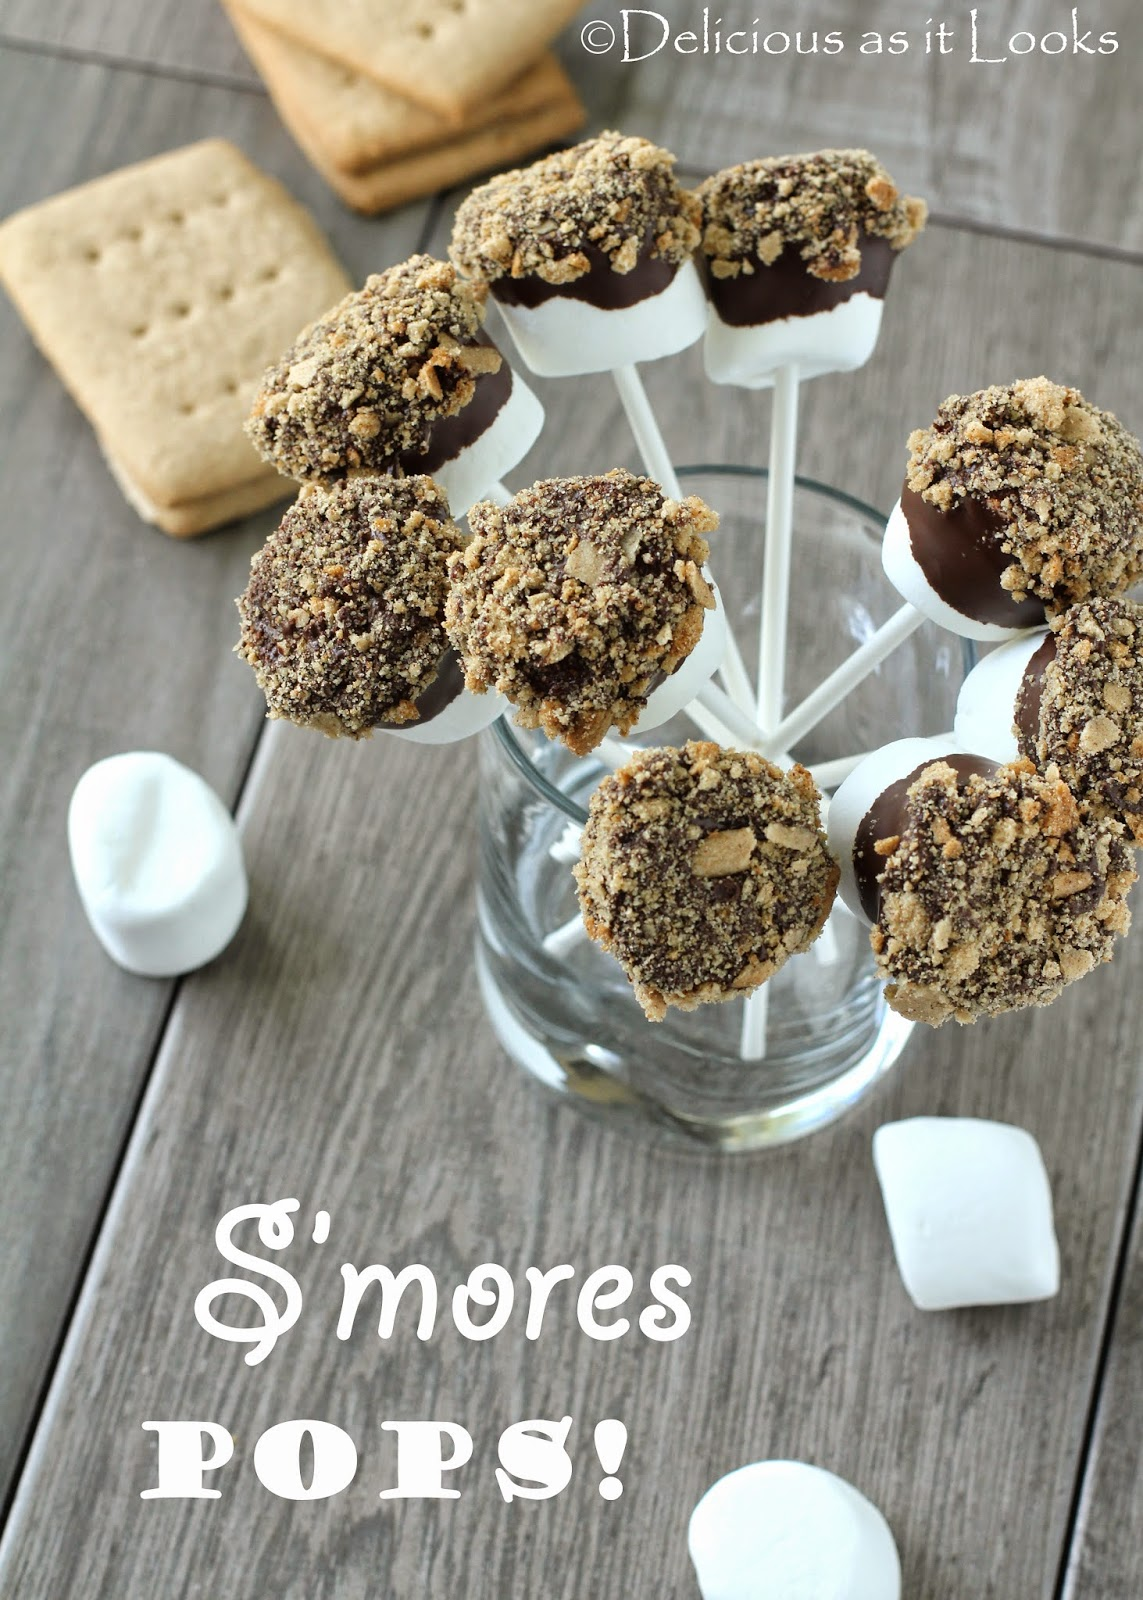 S'mores Pops (Gluten-Free, Dairy-Free, Egg-Free)  /  Delicious as it Looks